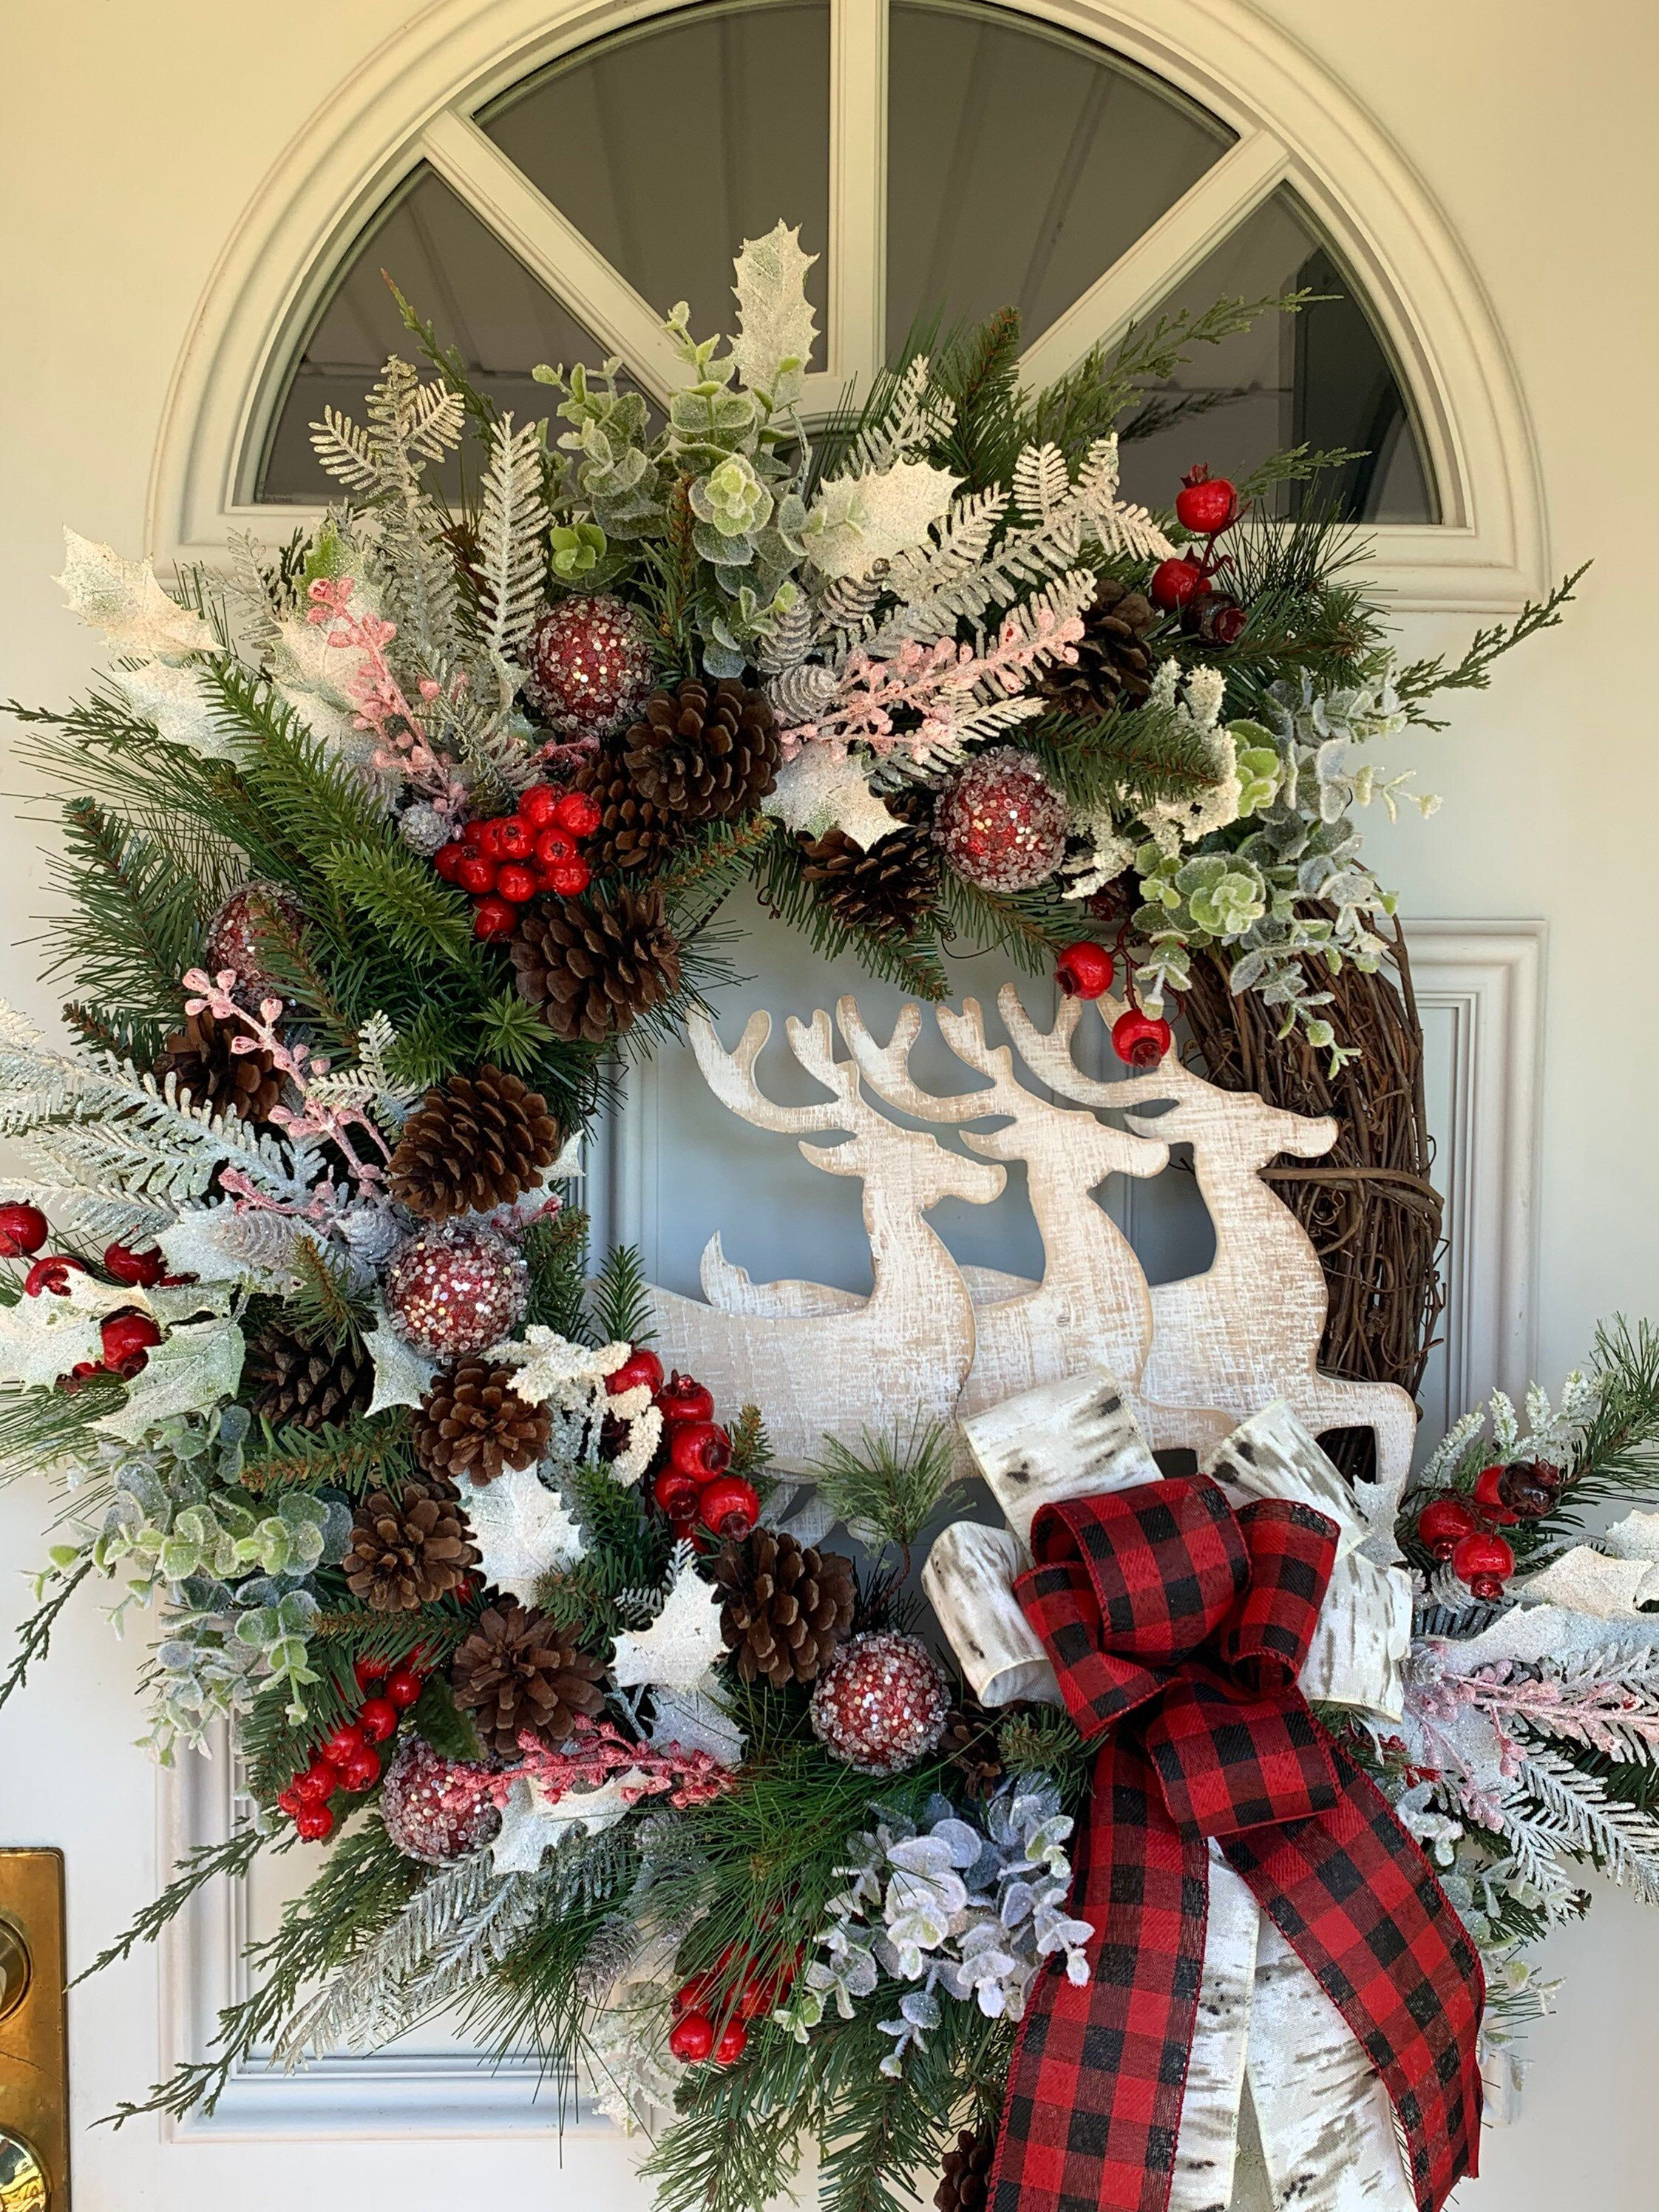 Excited to share this item from my #etsy shop: Christmas Wreath, Holiday Wreath, Deer wreath, country Christmas Wreath, buffalo checkered wreath, grapevine wreath #merrychristmaswrea #buffalocheckered #reindeerwreath #christmasdecor #christmaswreath #holidaywreath #berrywreath #holidayseason #frontdoordecor